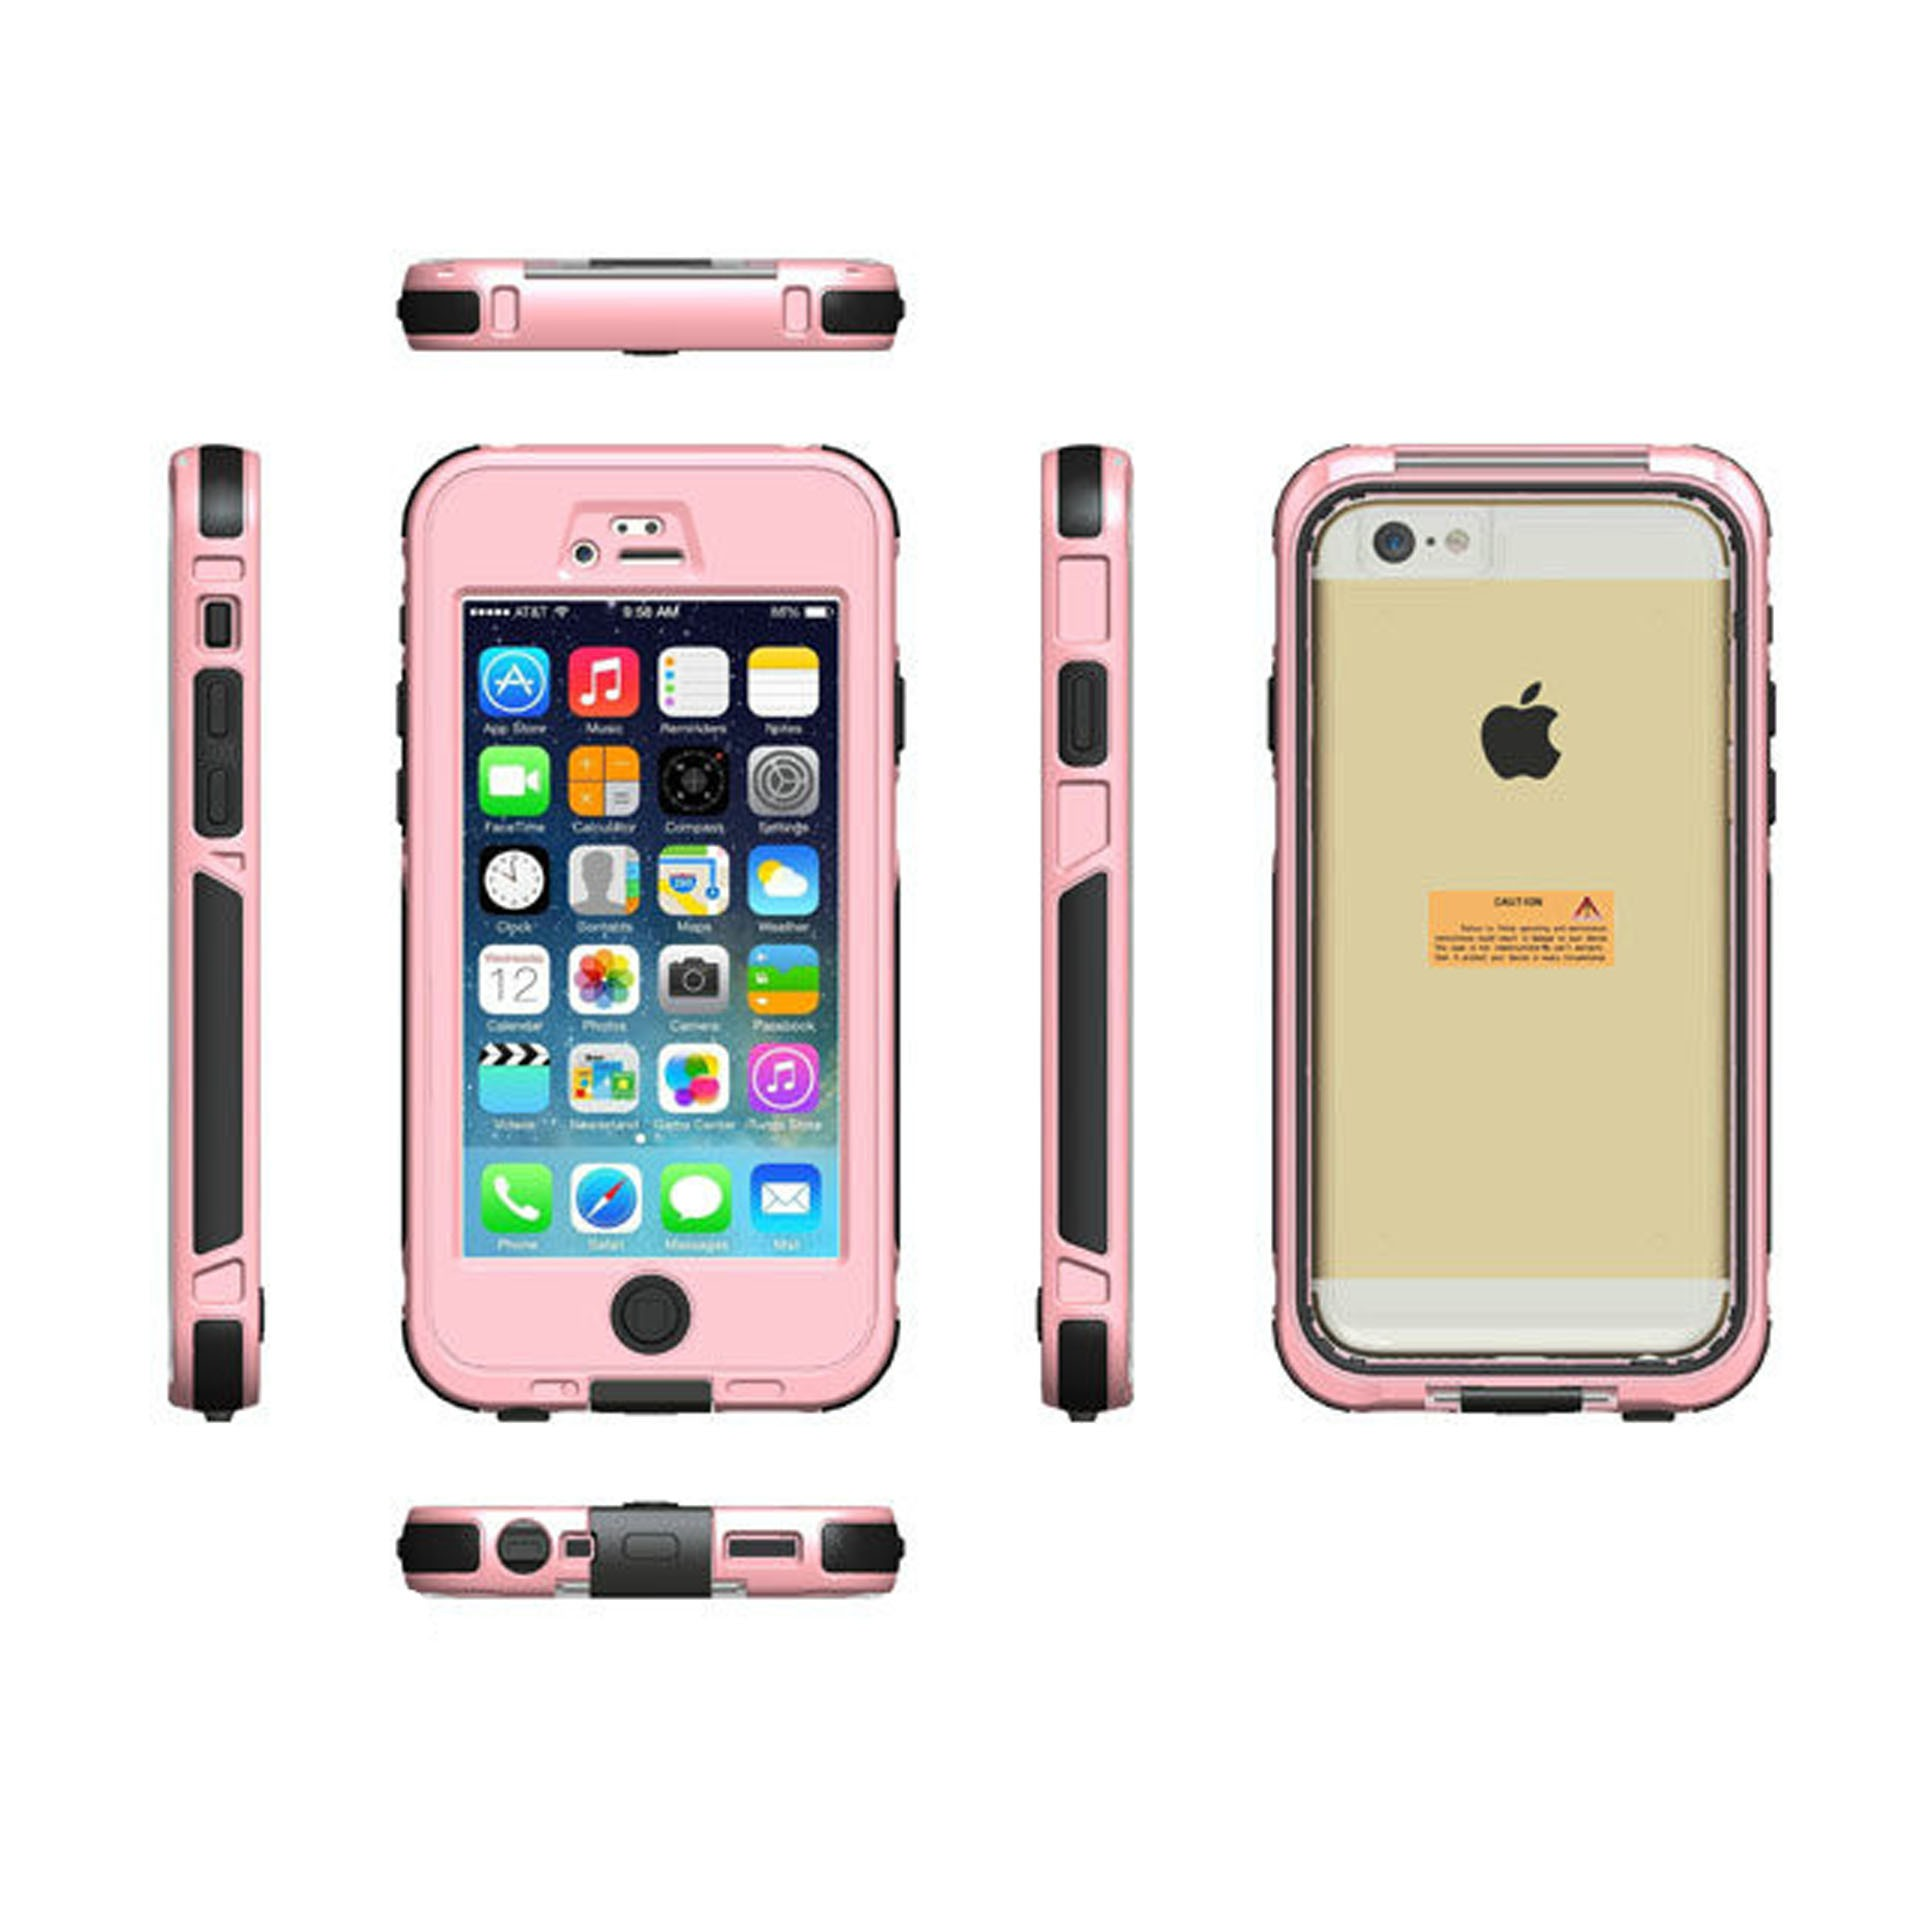 Yemota Pro Waterproof 3m Case iPhone 6 / 6S - Pink